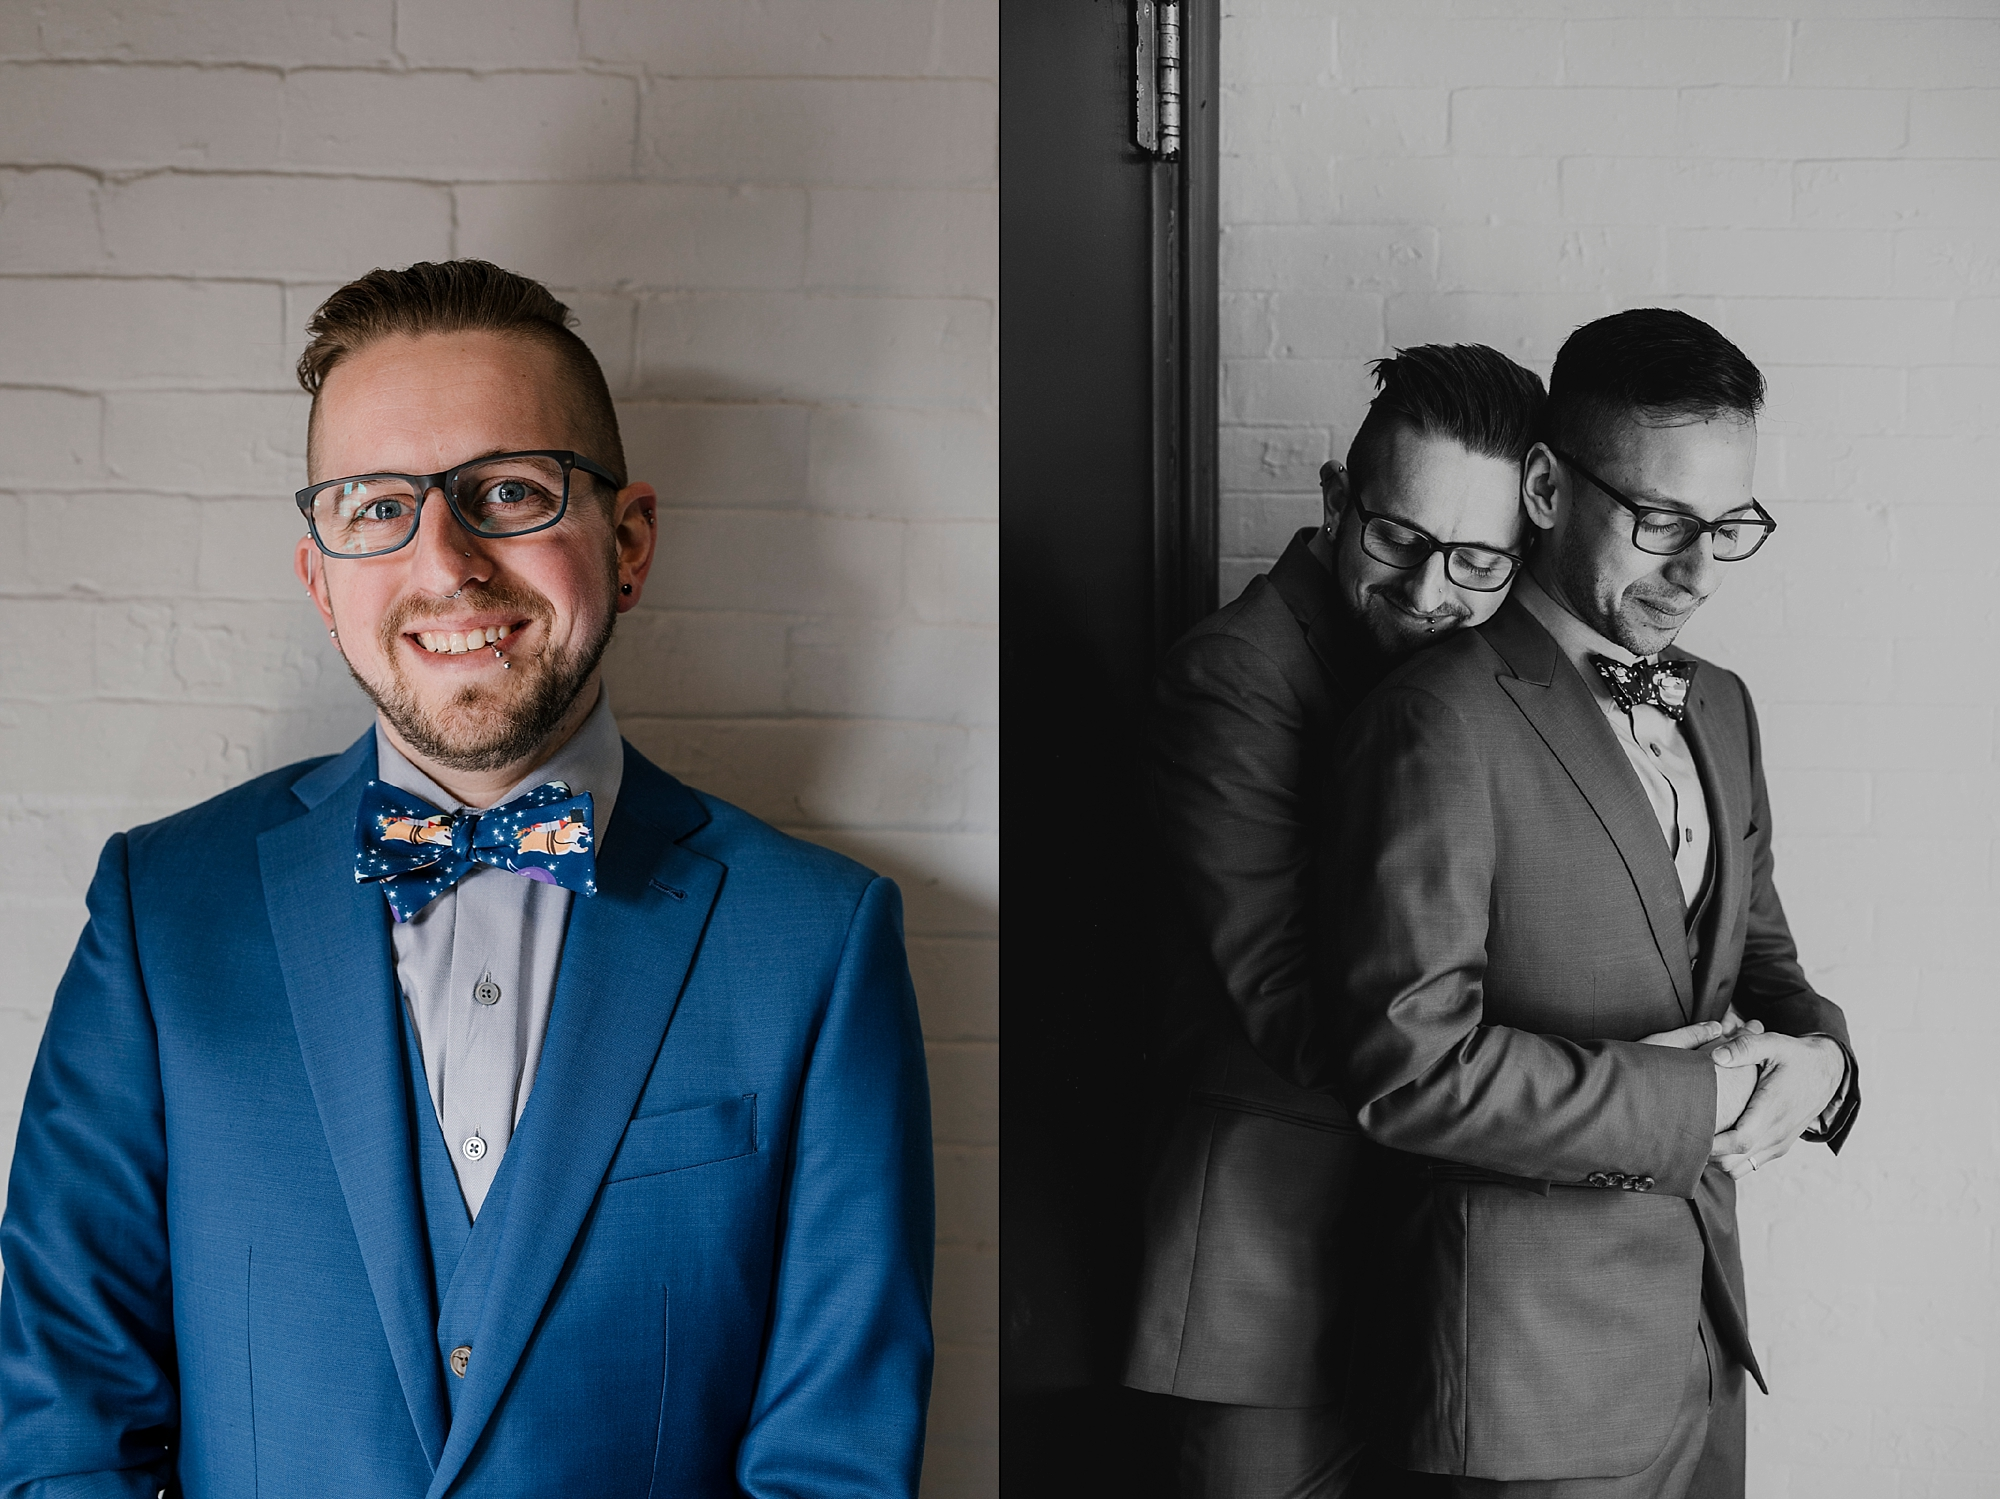 Joe_Mac_Creative_Philadelphia_Philly_LGBT_Gay_Engagement_Wedding_Photography__0116.jpg